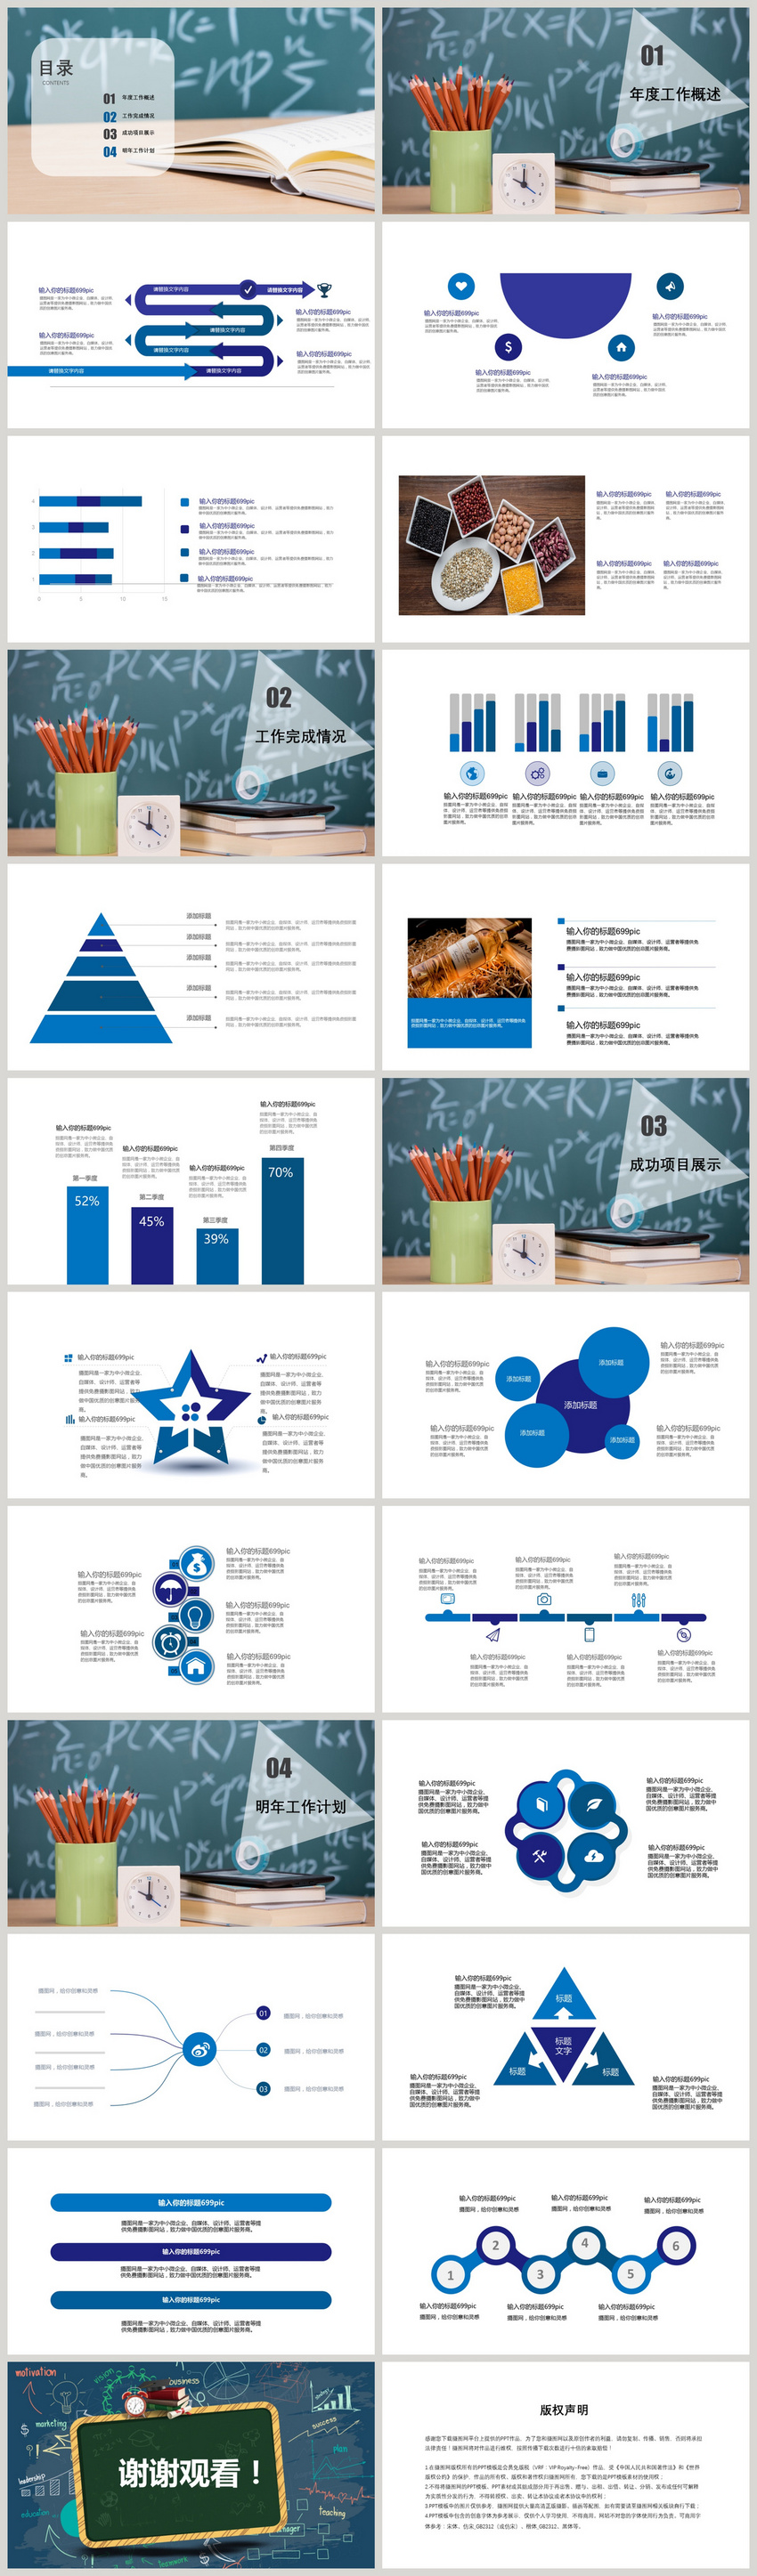 Blackboard wind education courseware ppt template powerpoint ...